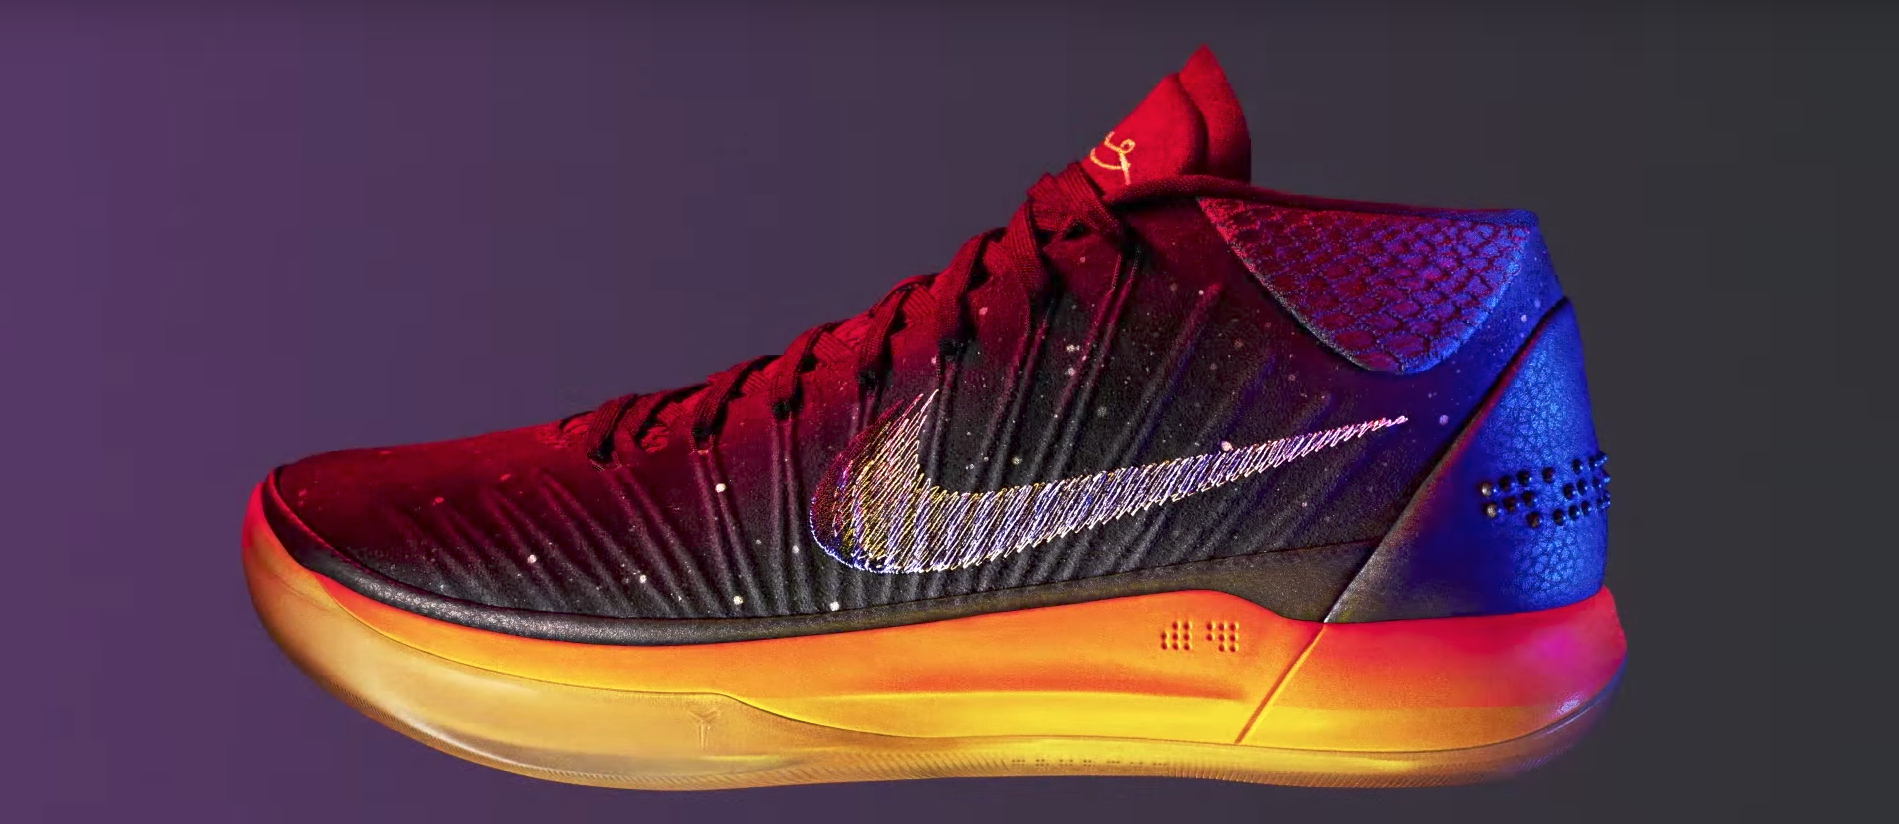 A New Colorway of the Kobe A.D. Mid